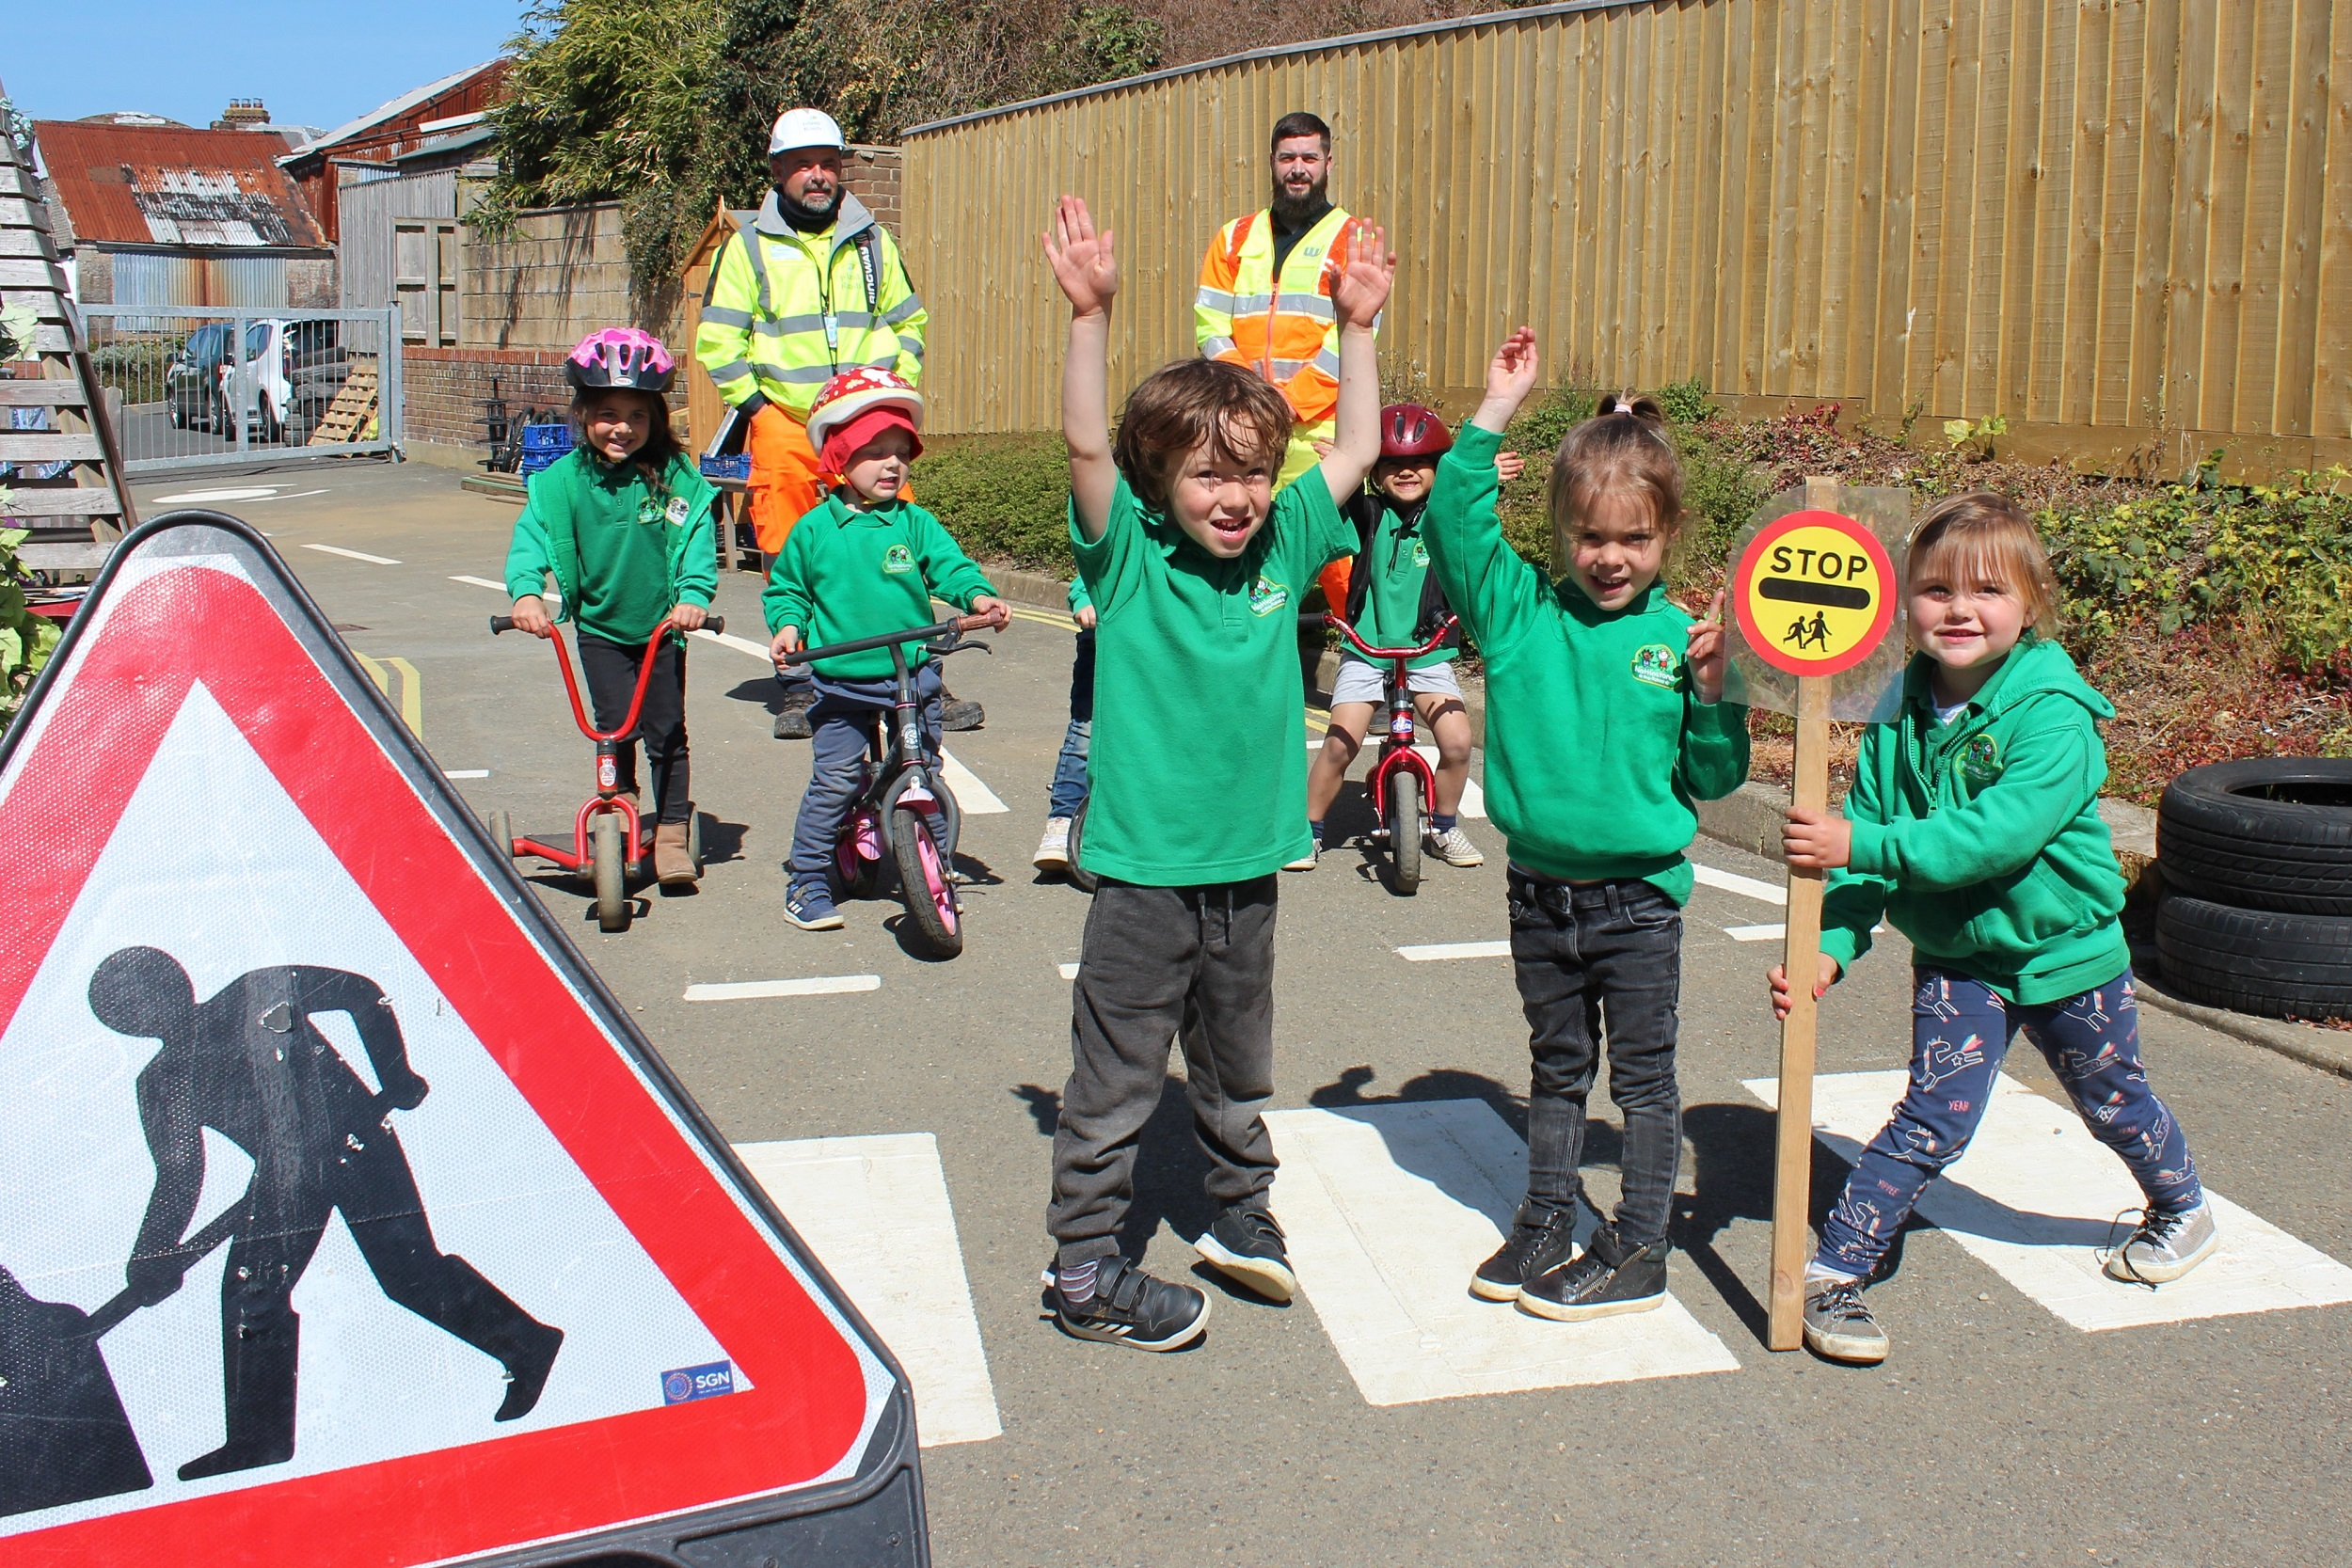 Photo showing school children on a pedestrian crossing that has been marked out on the playground, together with road signs, other children on bikes and Island Roads staff in the background